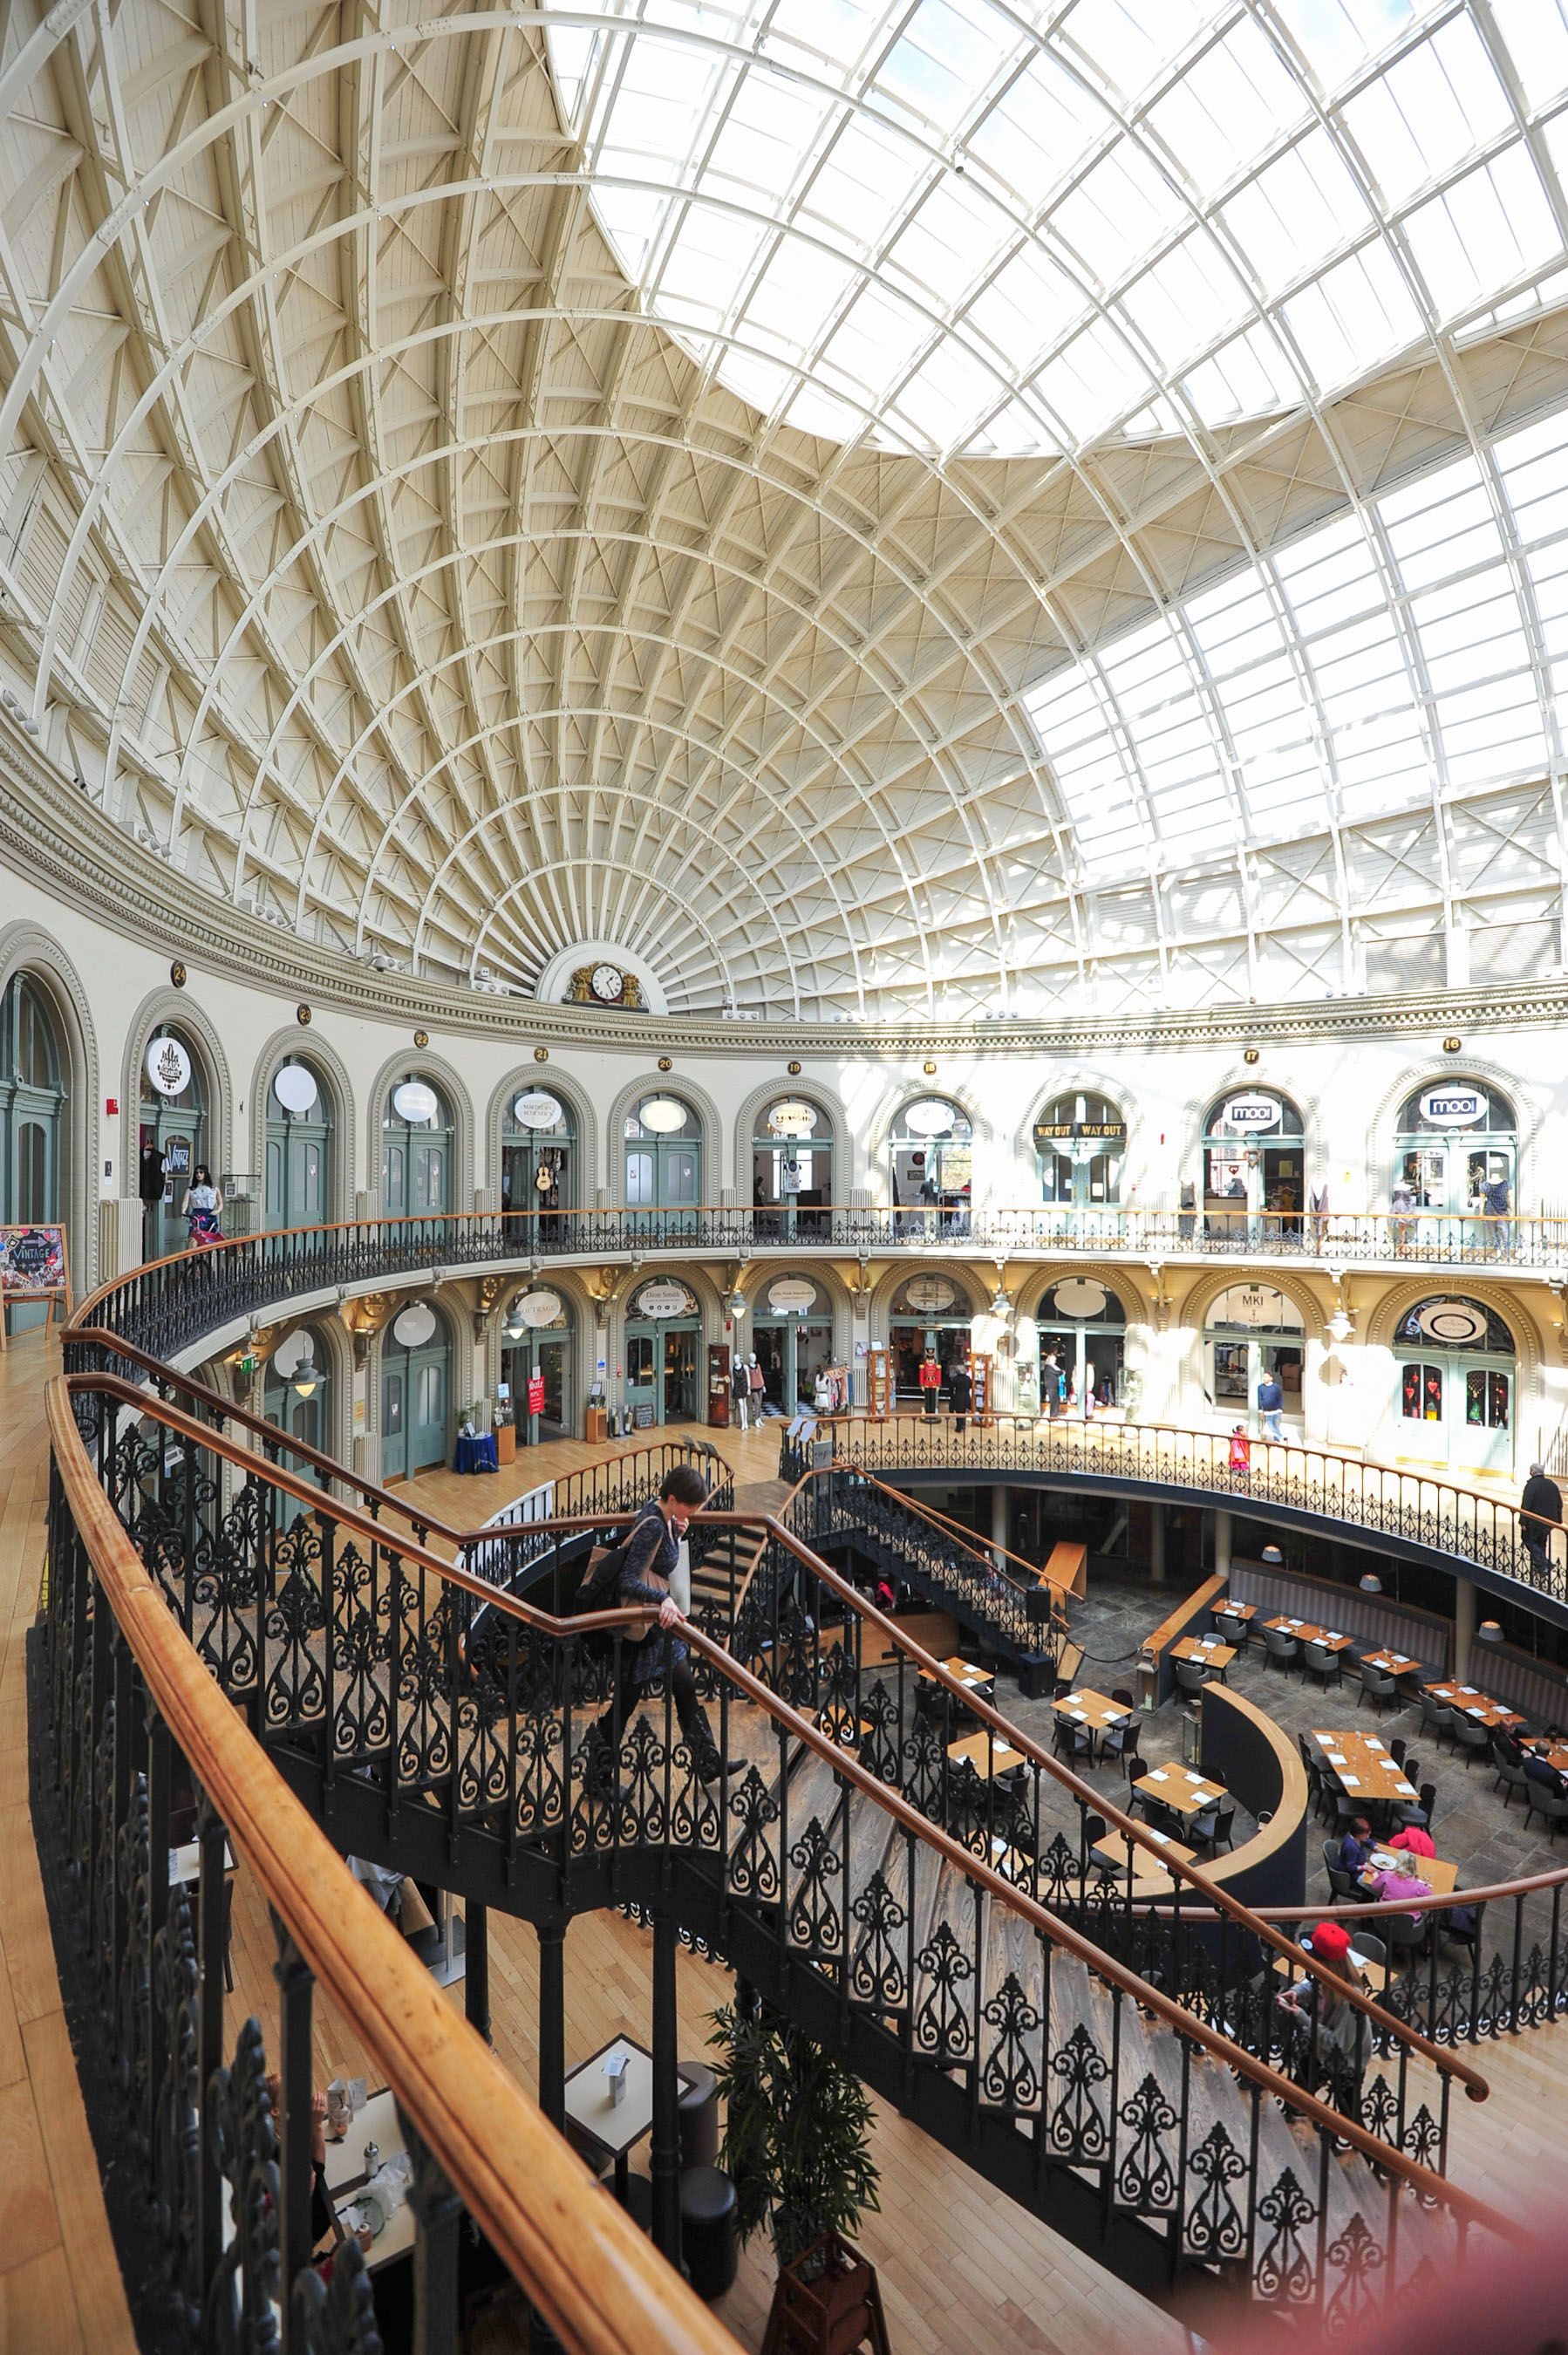 The Fantastic Roof Of Leeds Corn Exchange Opened In 1863 The Victorians Built It With The Two Roof Lights To Pro Leeds England England Photography Leeds City